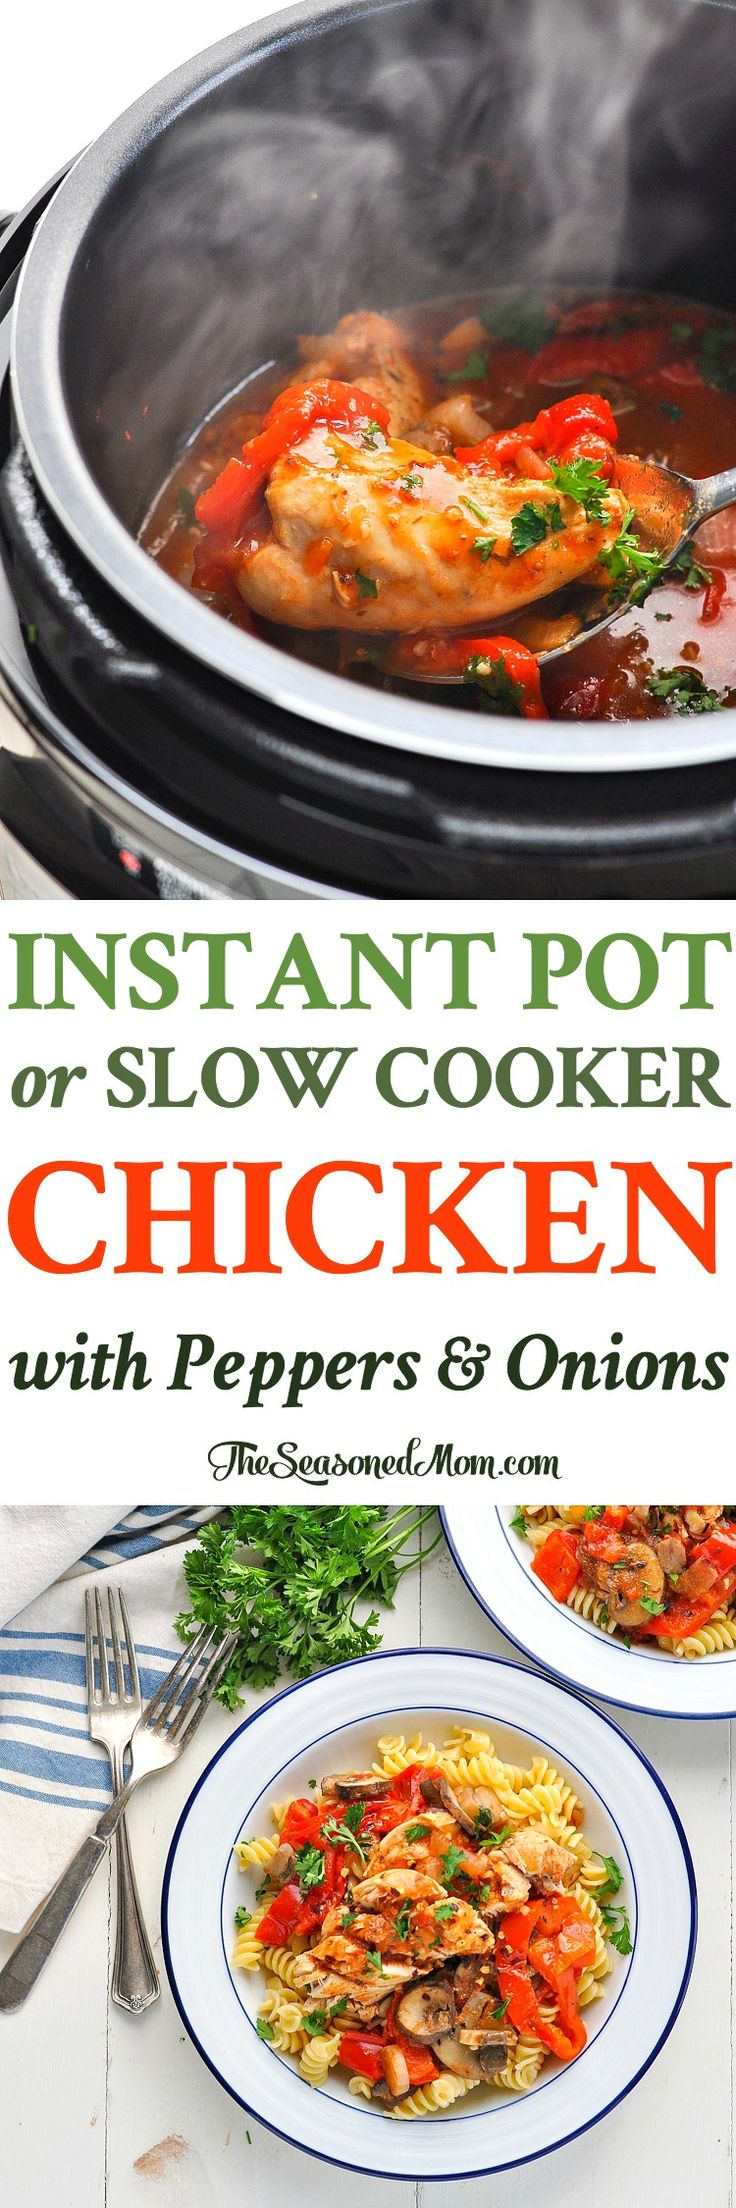 Slow Cooker or Instant Pot Chicken with Peppers - The Seasoned Mom